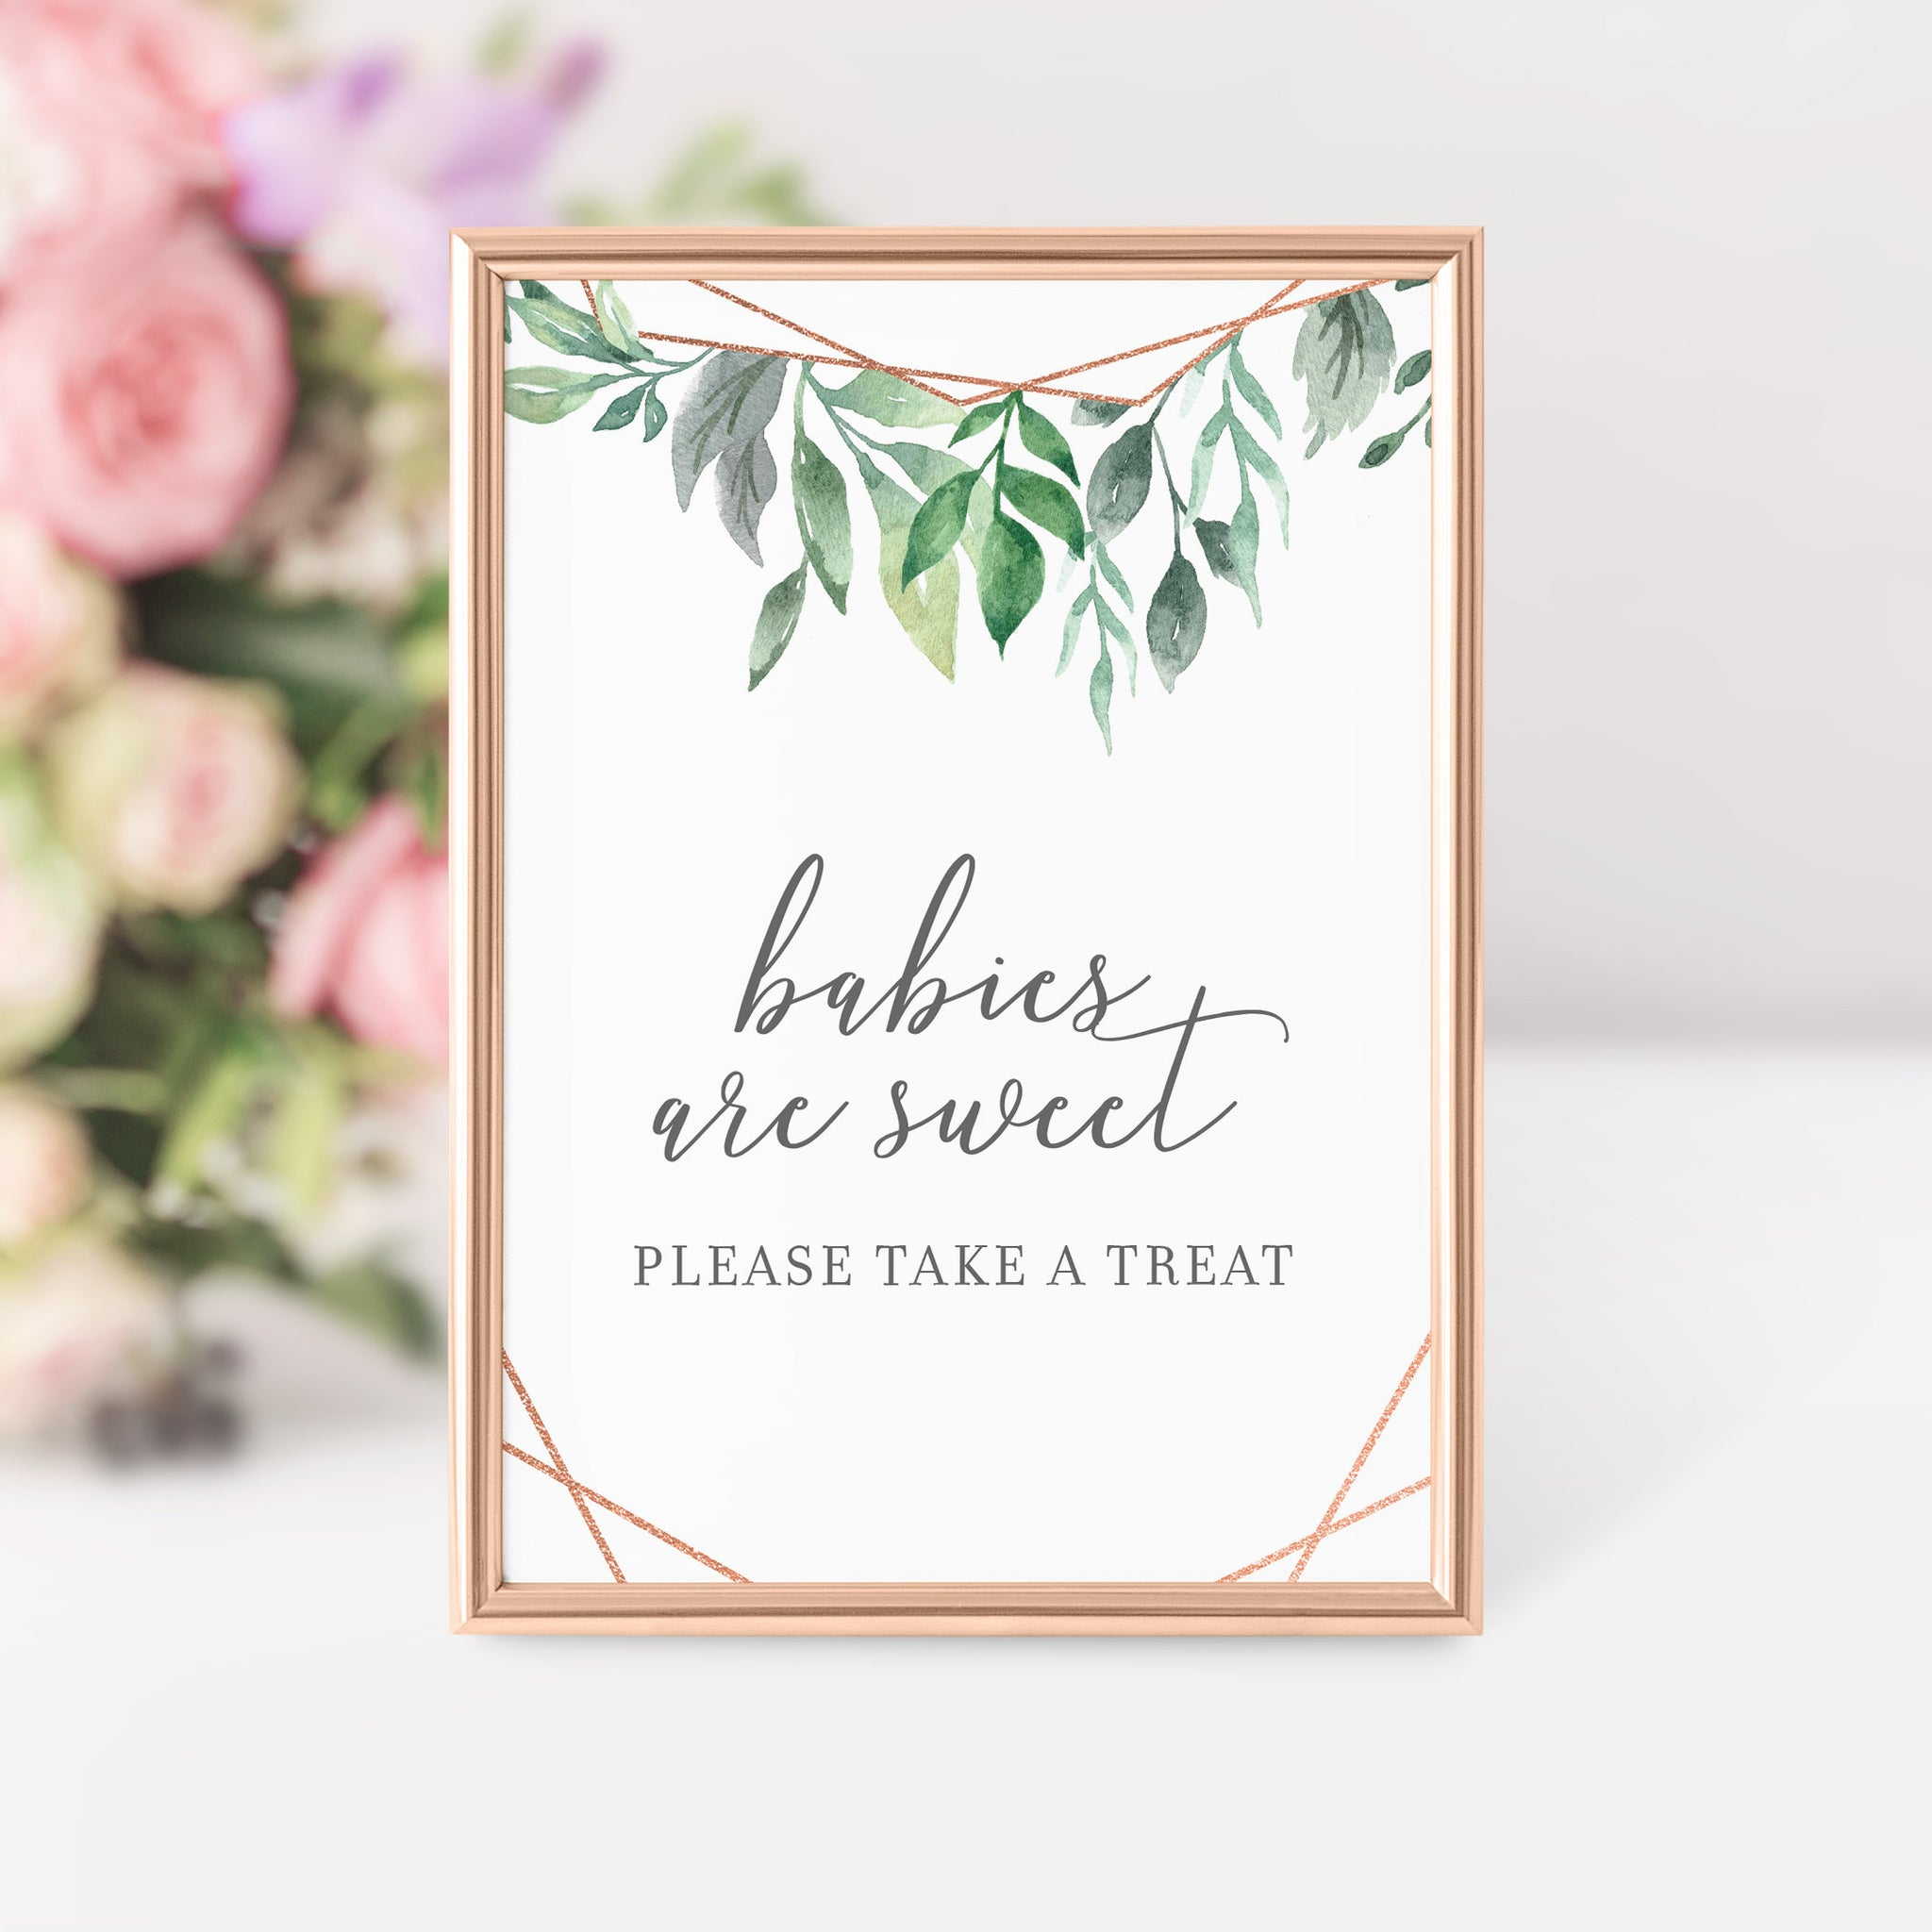 Geometric Rose Gold Greenery Printable Treat Sign, INSTANT DOWNLOAD, Baby Shower Decorations, Sip and See Babies Are Sweet Dessert - GFRG100 - @PlumPolkaDot